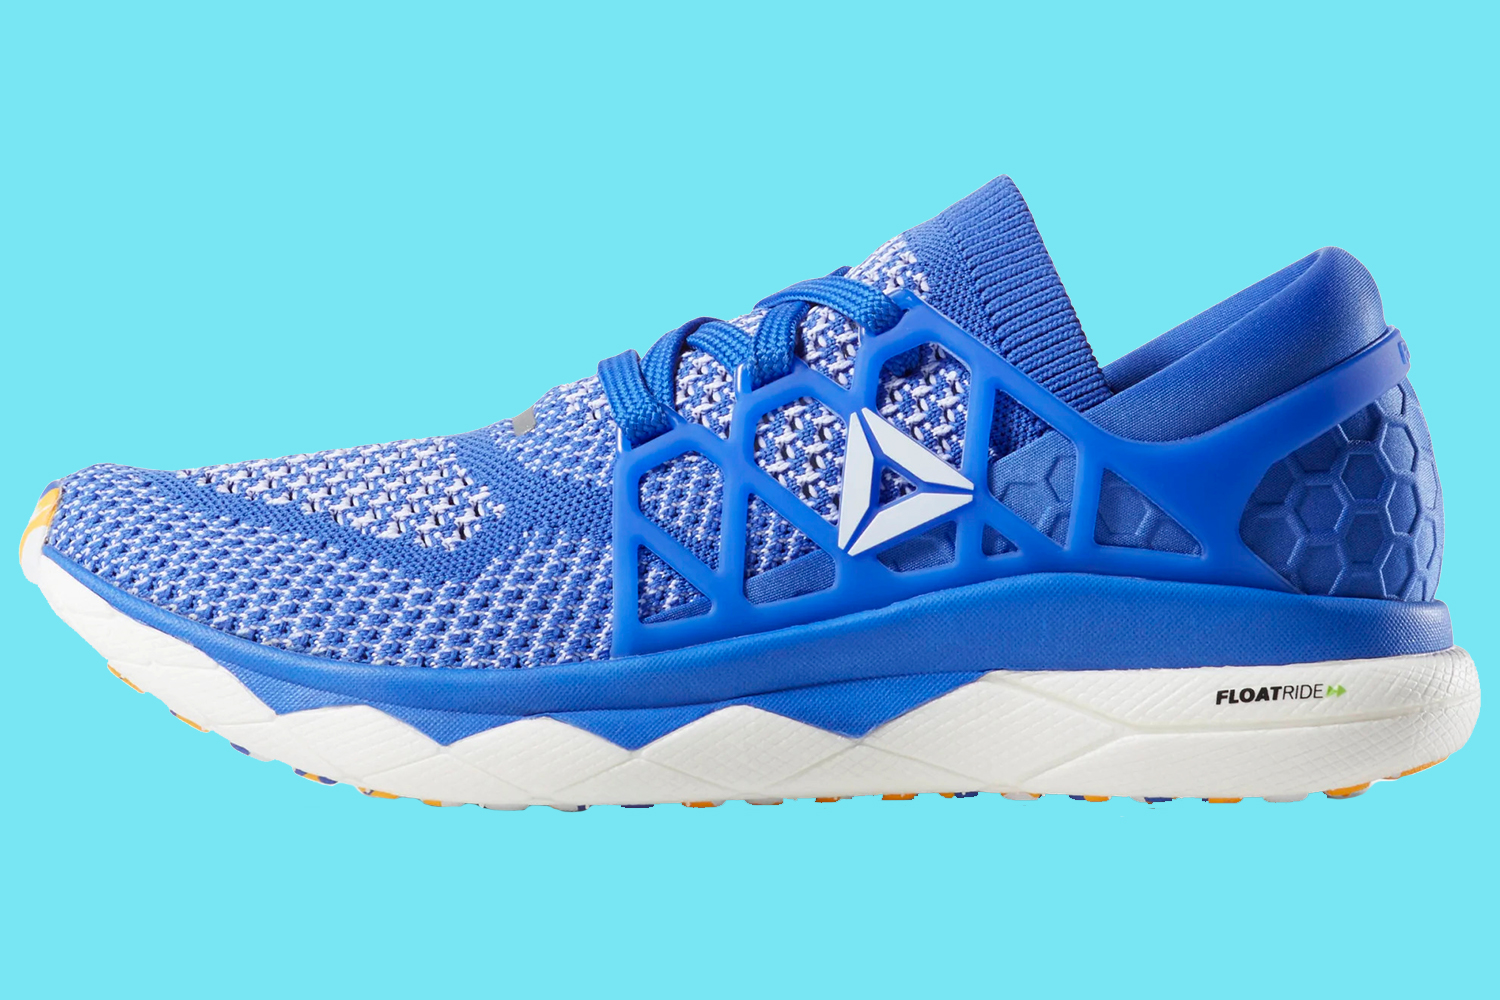 brand new f1e76 c4535 Reebok's Sitewide Sale Includes 40% Off Floatride Run Shoes ...